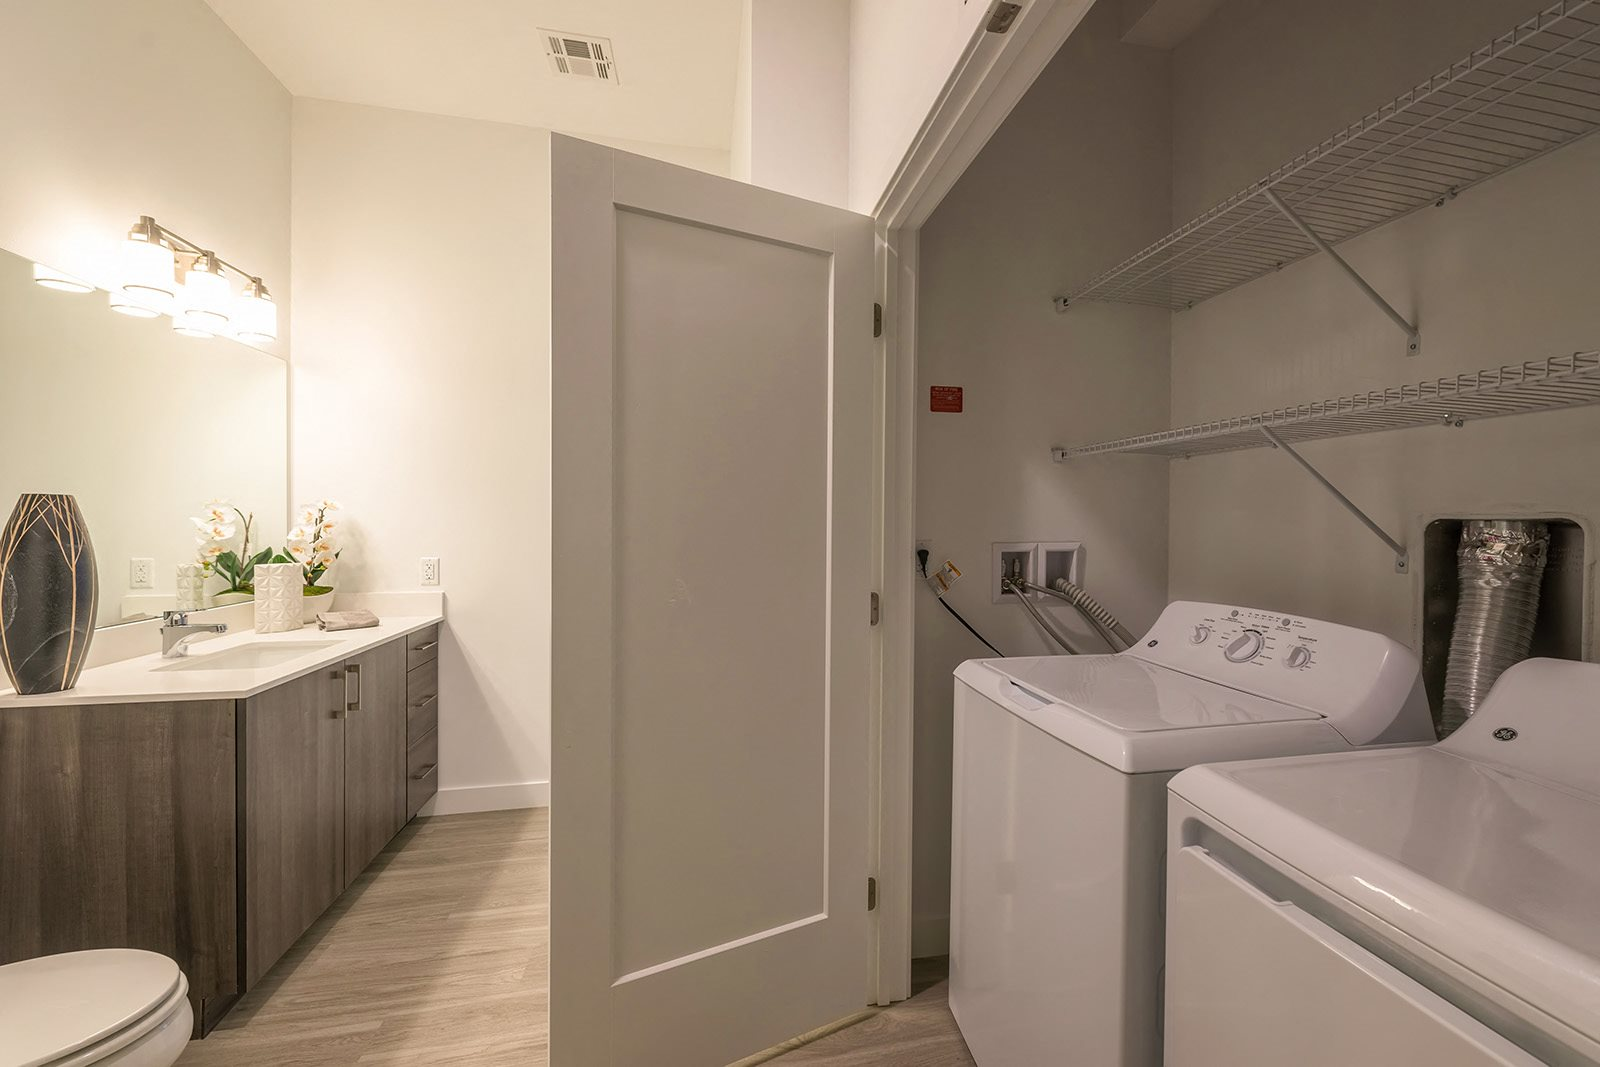 In-home washer and dryer at Hopkinton by Windsor, MA, 01748